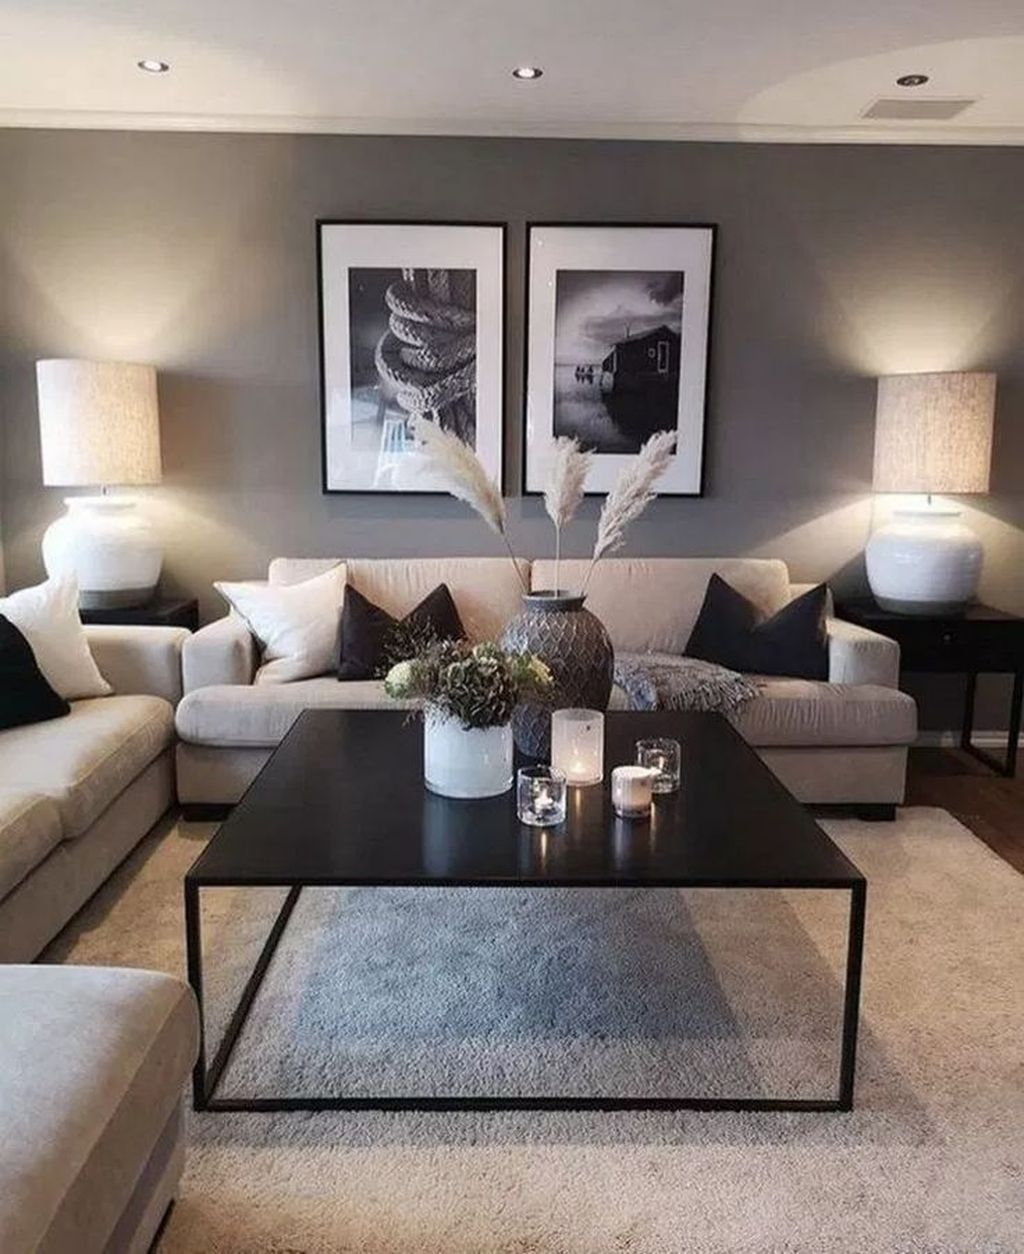 34 Stunning Apartment Furniture Ideas You Must Have Pimphomee Living Room Decor Apartment Apartment Living Room Living Room Grey